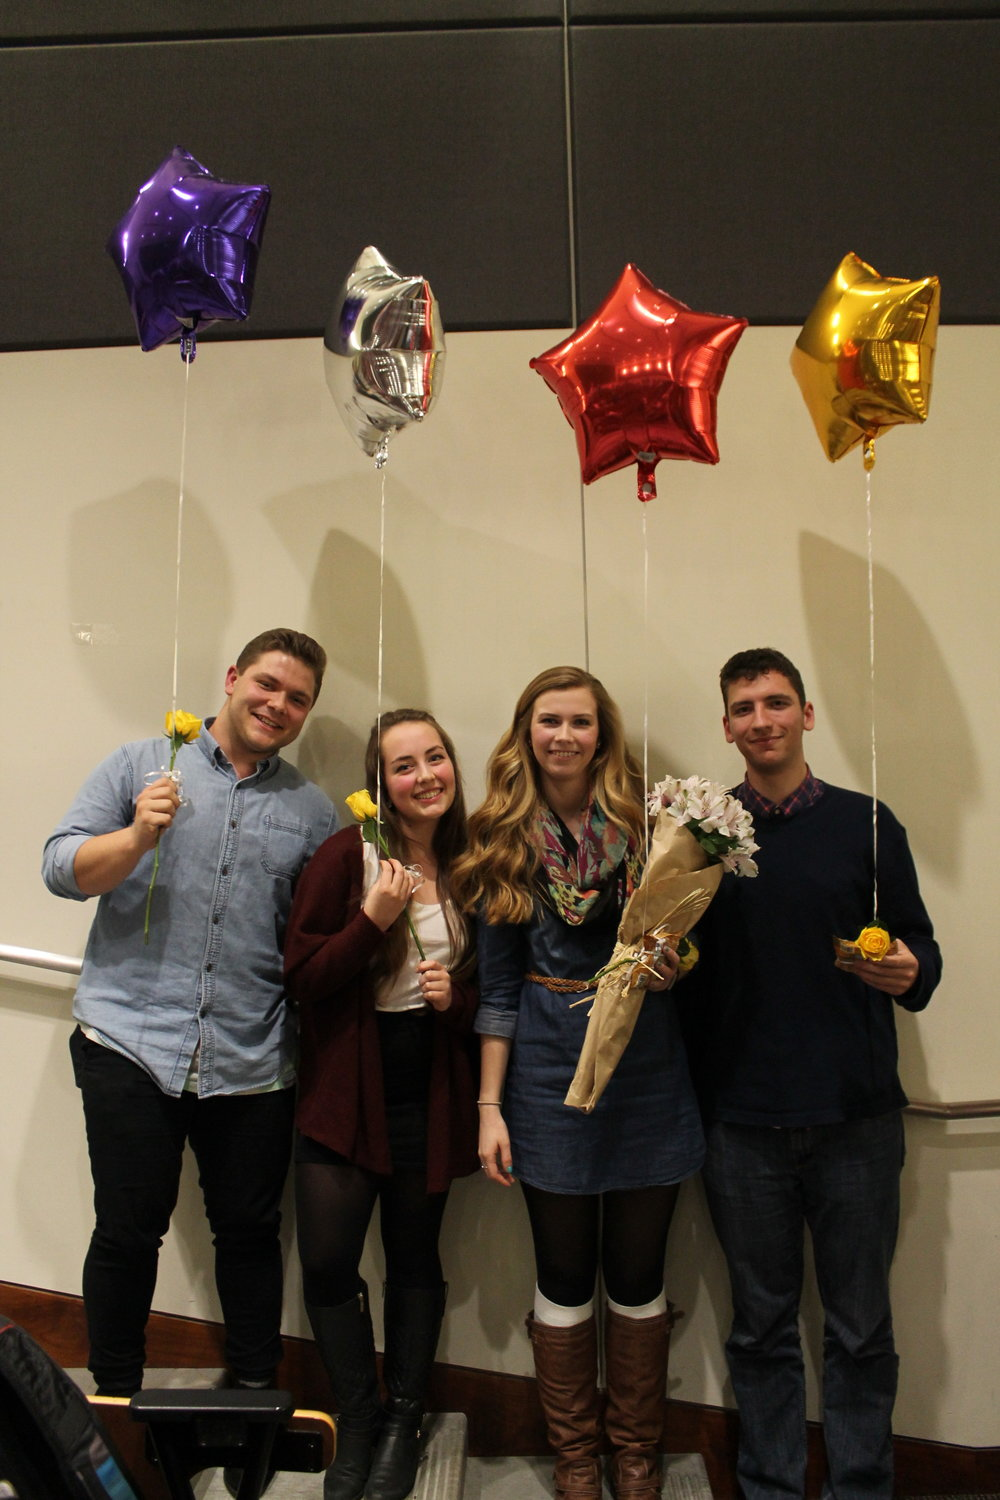 Our graduating seniors- the wonderful Cody Stephens,Brynna Mosely,Kristin Hanson, and John Perkins. Thank you all for your hard work and dedication to chapter!